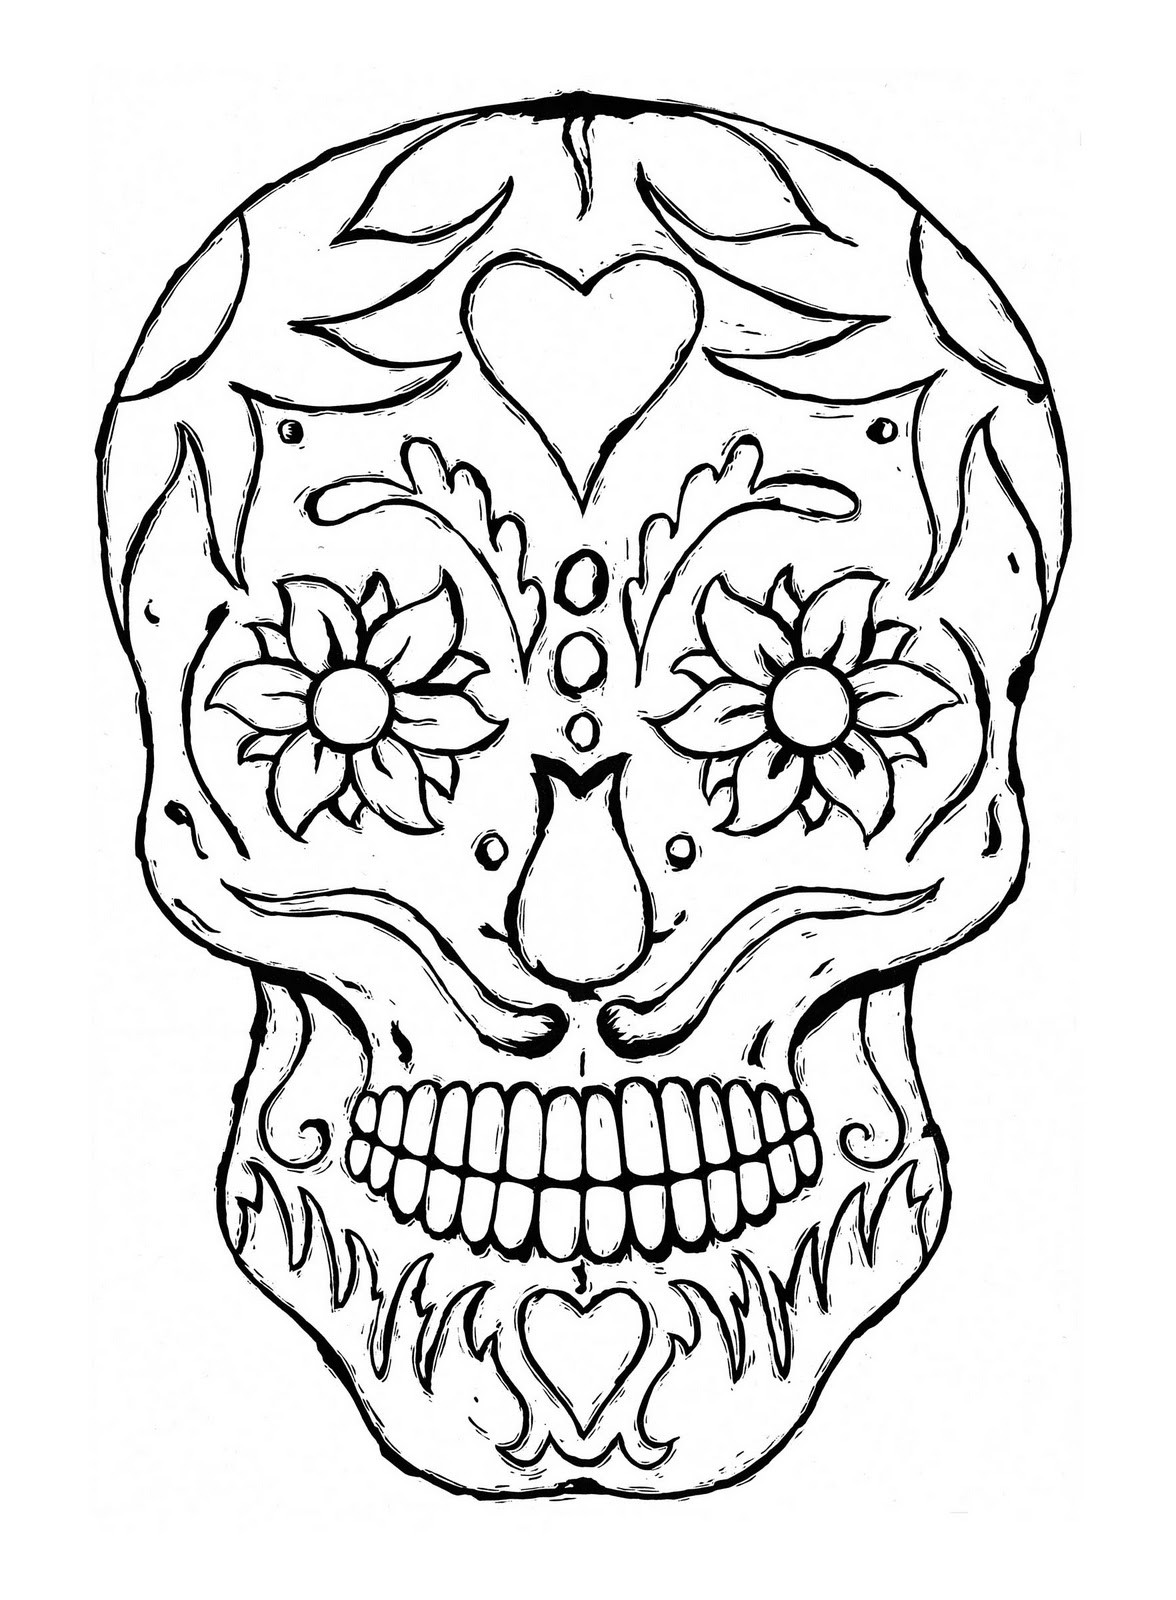 1176x1600 Skull Mask Coloring Pages, Printable Skull Mask Coloring Pages